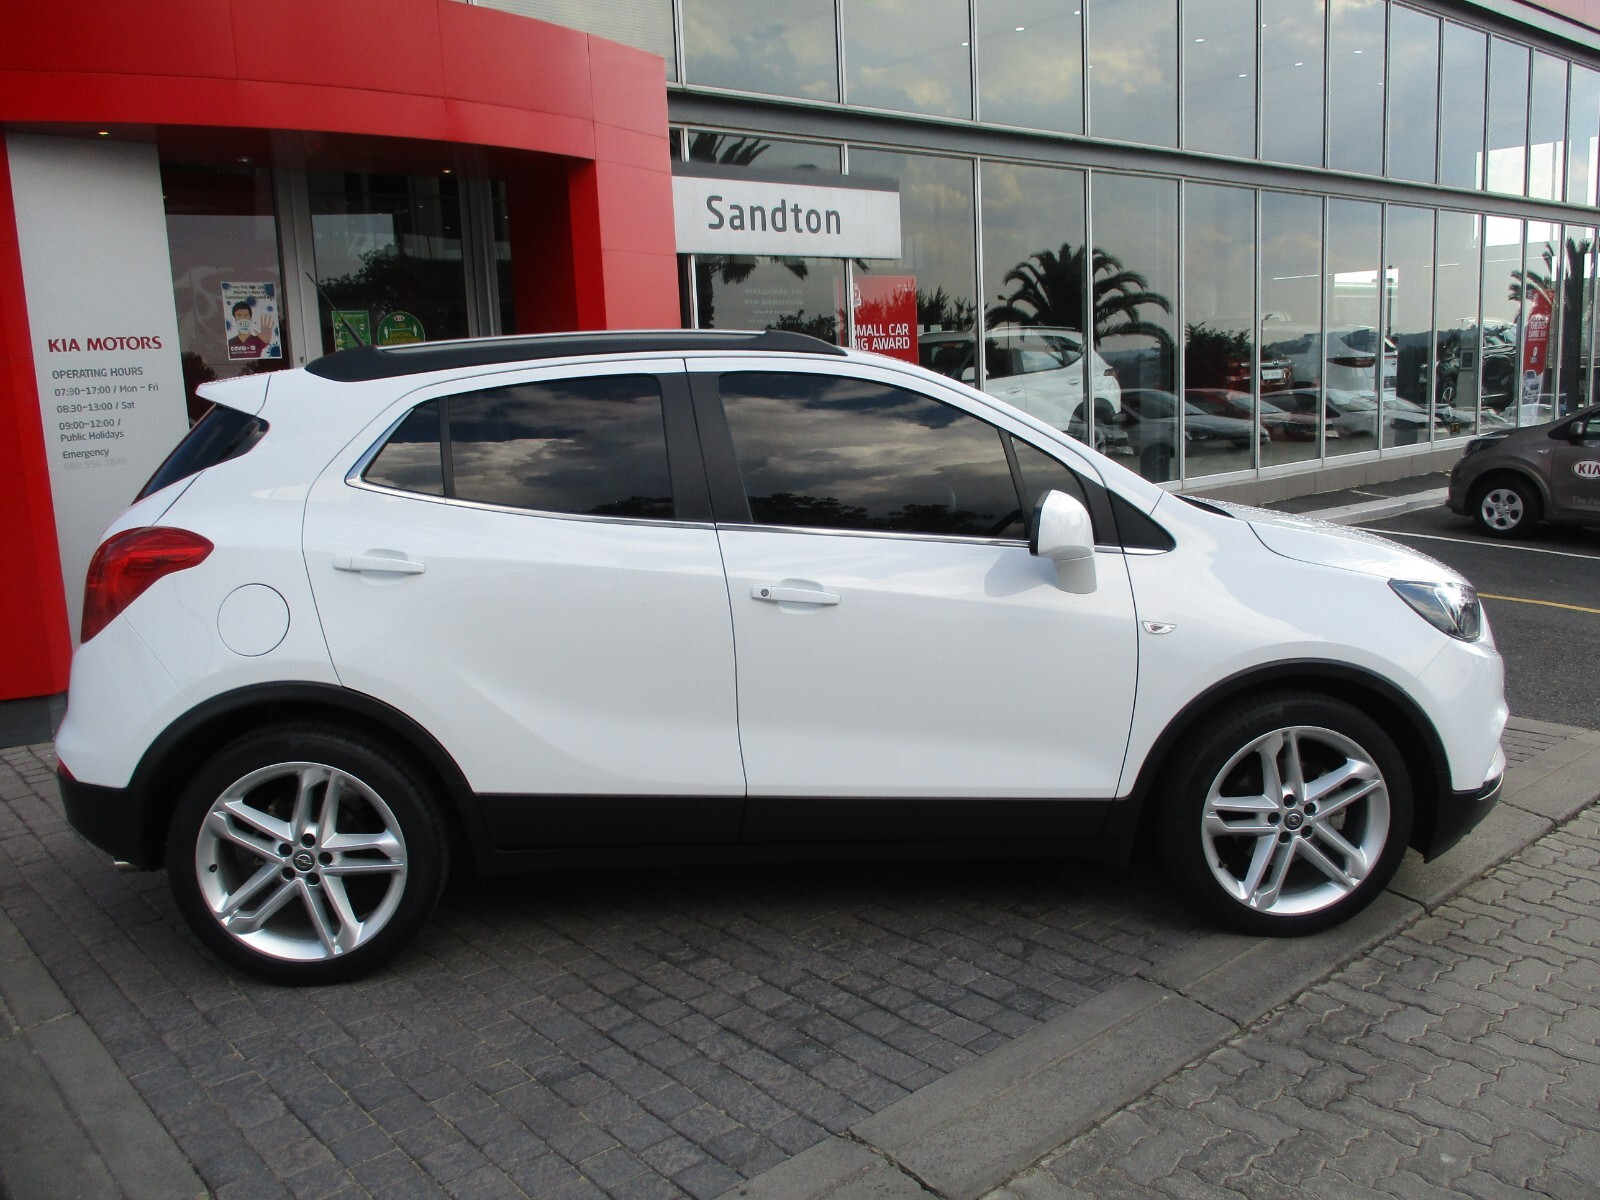 OPEL / X 1.4T COSMO A/T Sandton 7326788